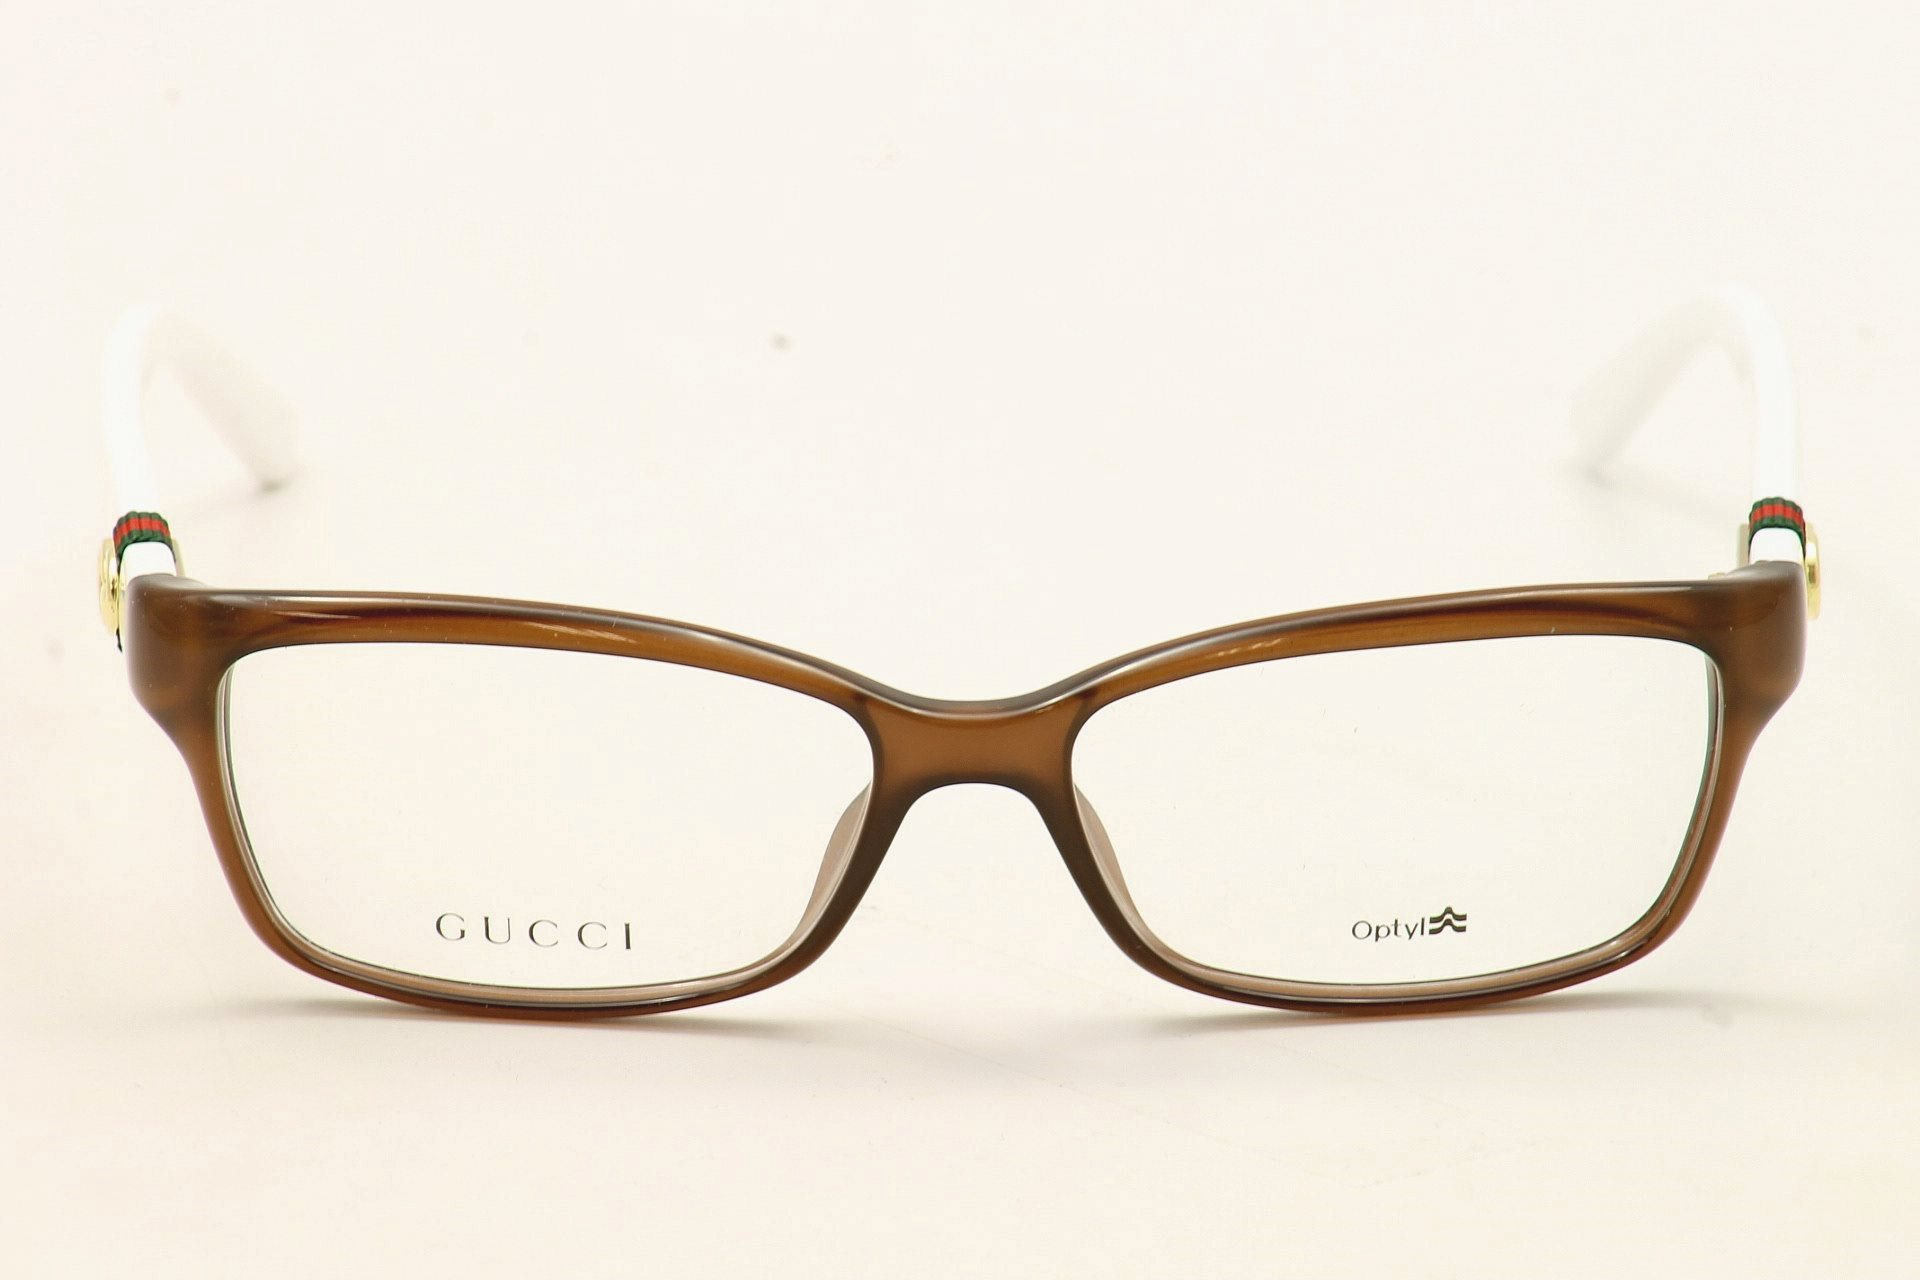 Gucci Ladies Eyeglass Frames : Gucci Womens Eyeglasses 3647 Full Rim Optical Frame